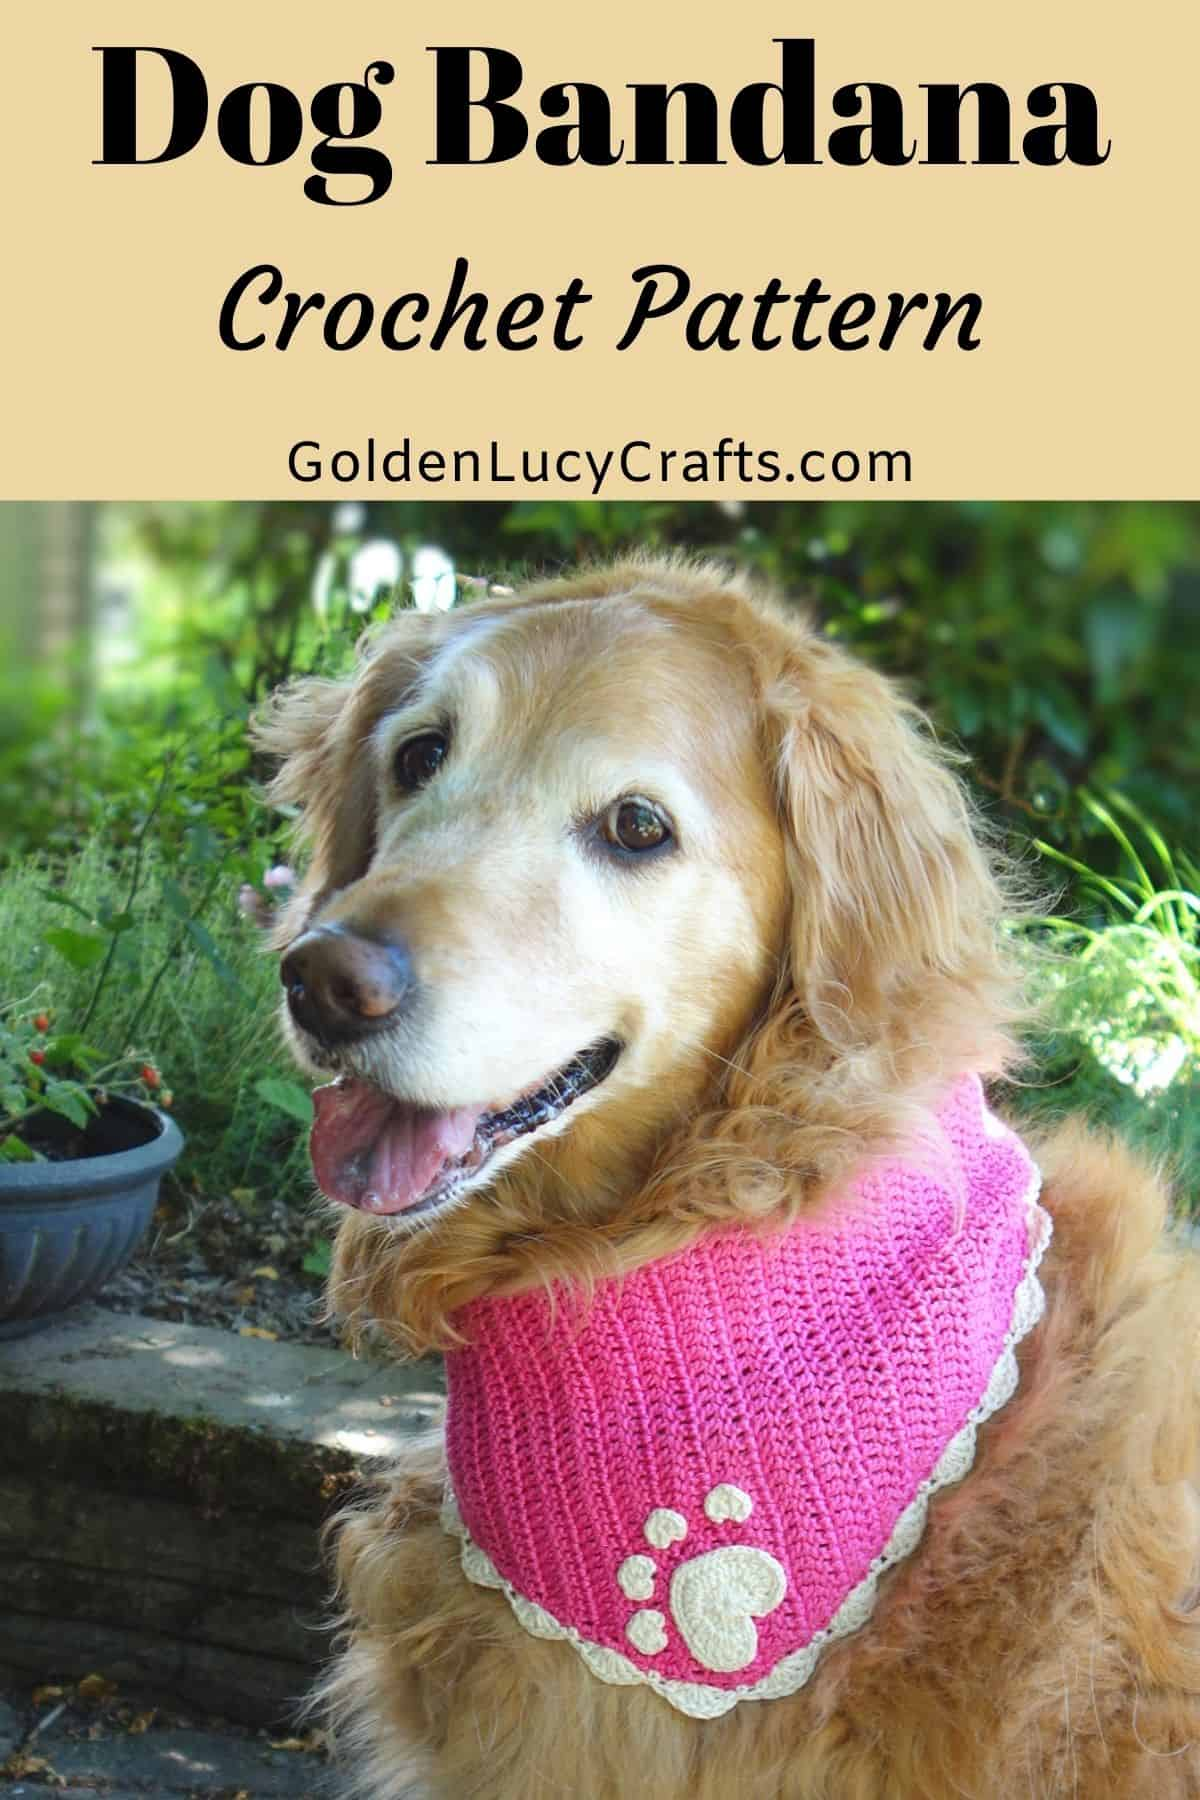 Golden retriever dressed in pink crocheted dog bandana.